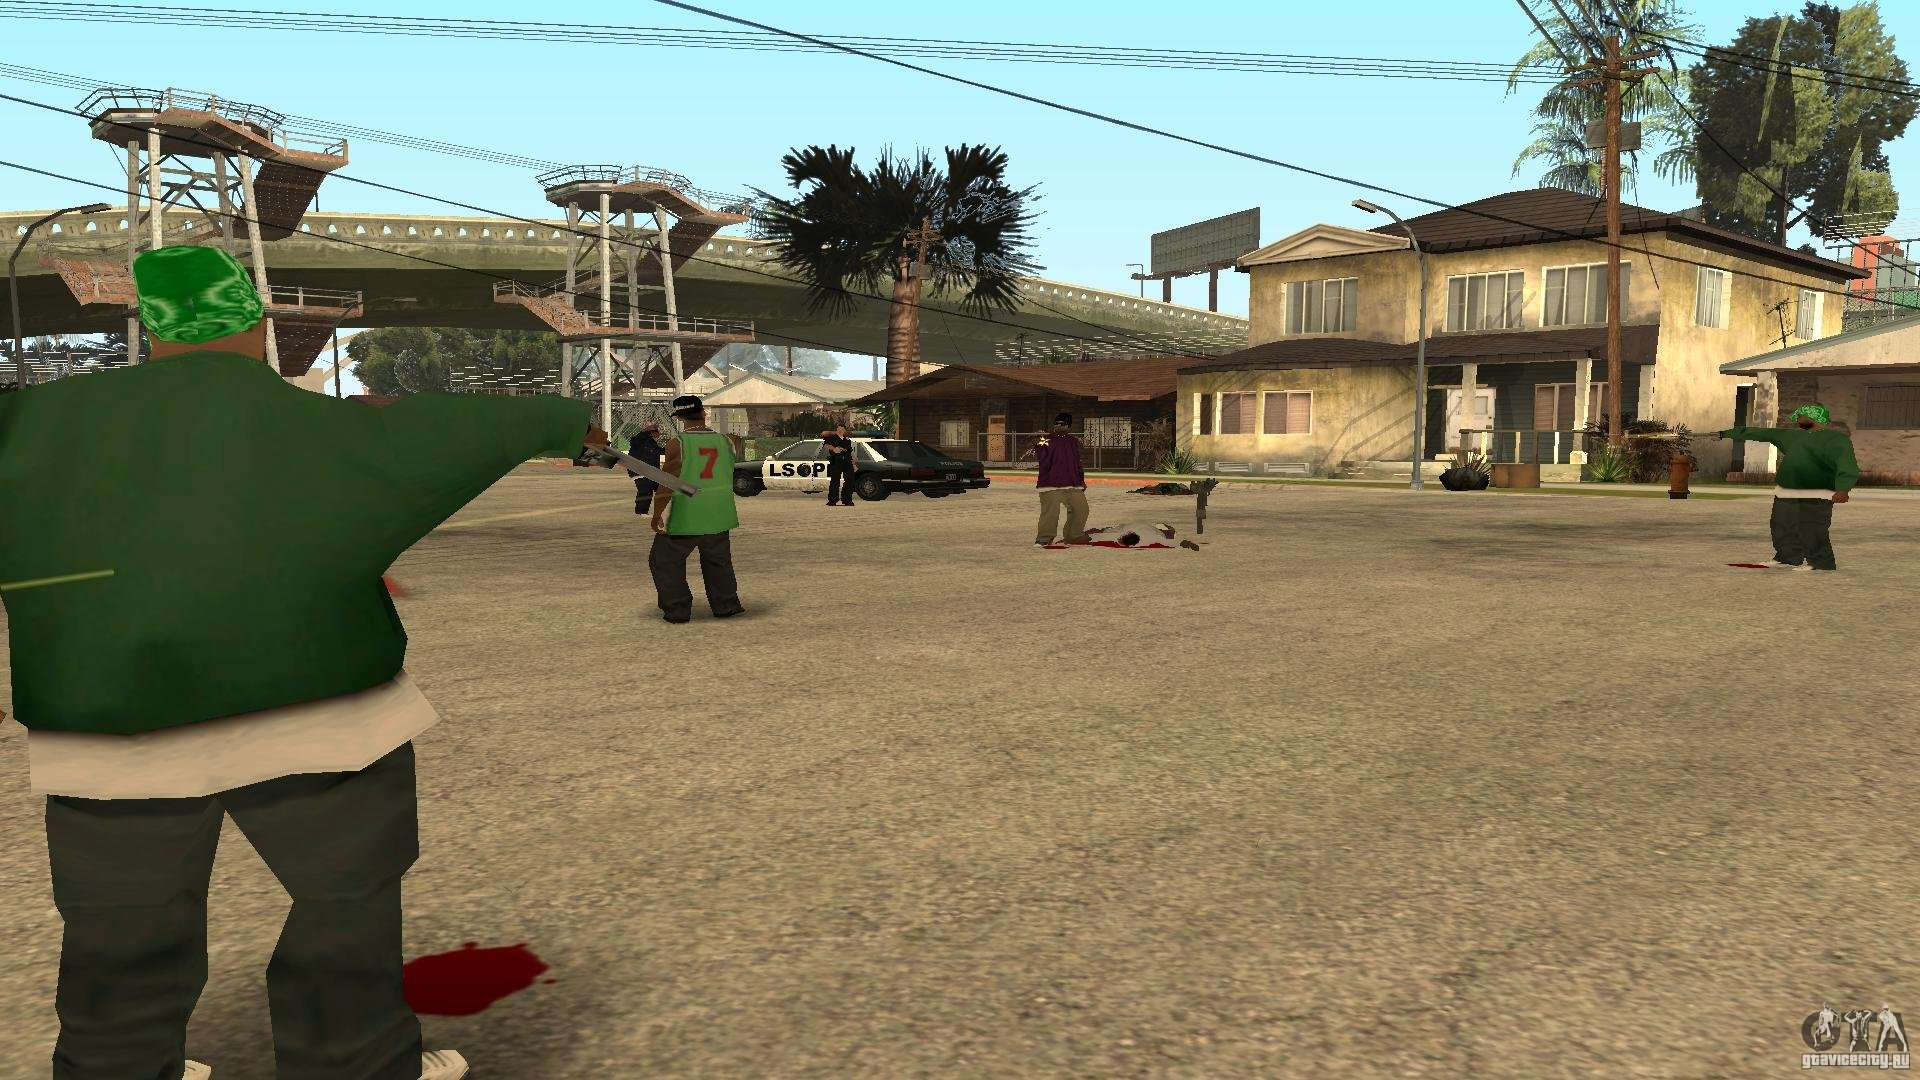 Grove Street            Ballas        GTA San Andreas    Gta San Andreas Ballas Vs Grove Street